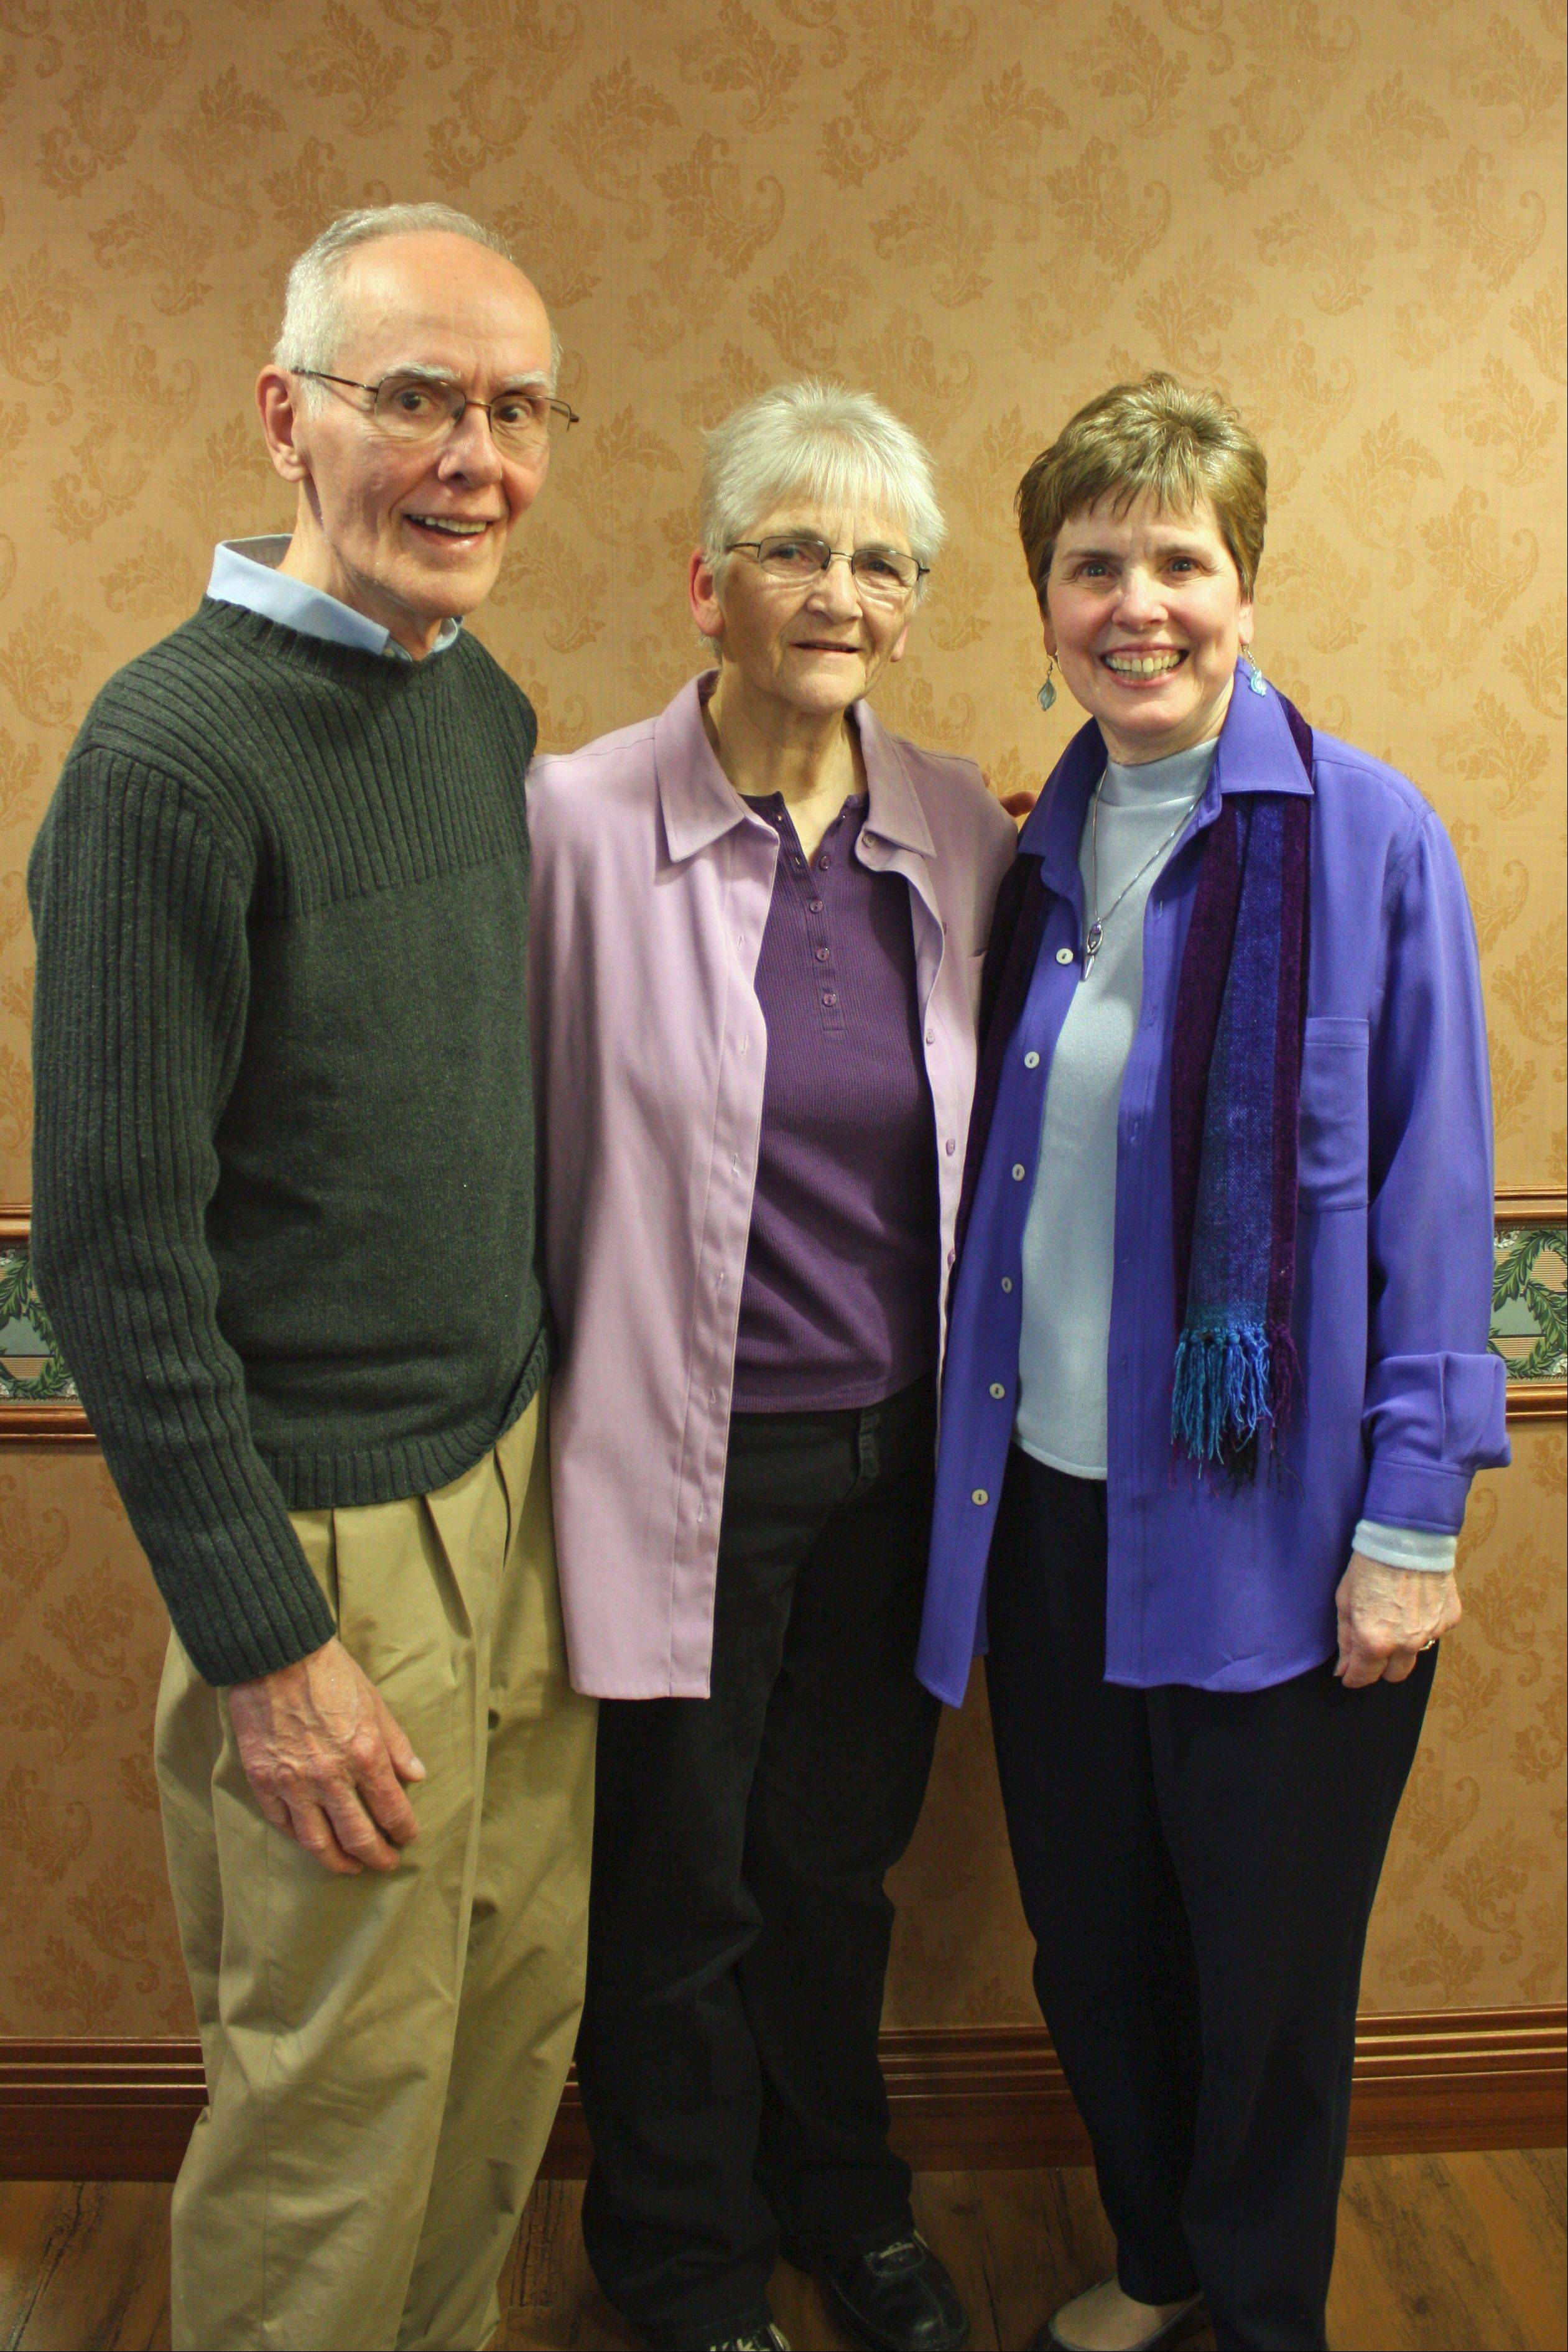 Mary Ellen Durbin, right, and her husband, Ron Durbin, co-founded Daybreak of Lisle to help homeless families transition to self-sufficiency. Sister Helen Jilek, center, has served as treasurer of Daybreak since the organization�s inception in 1989.